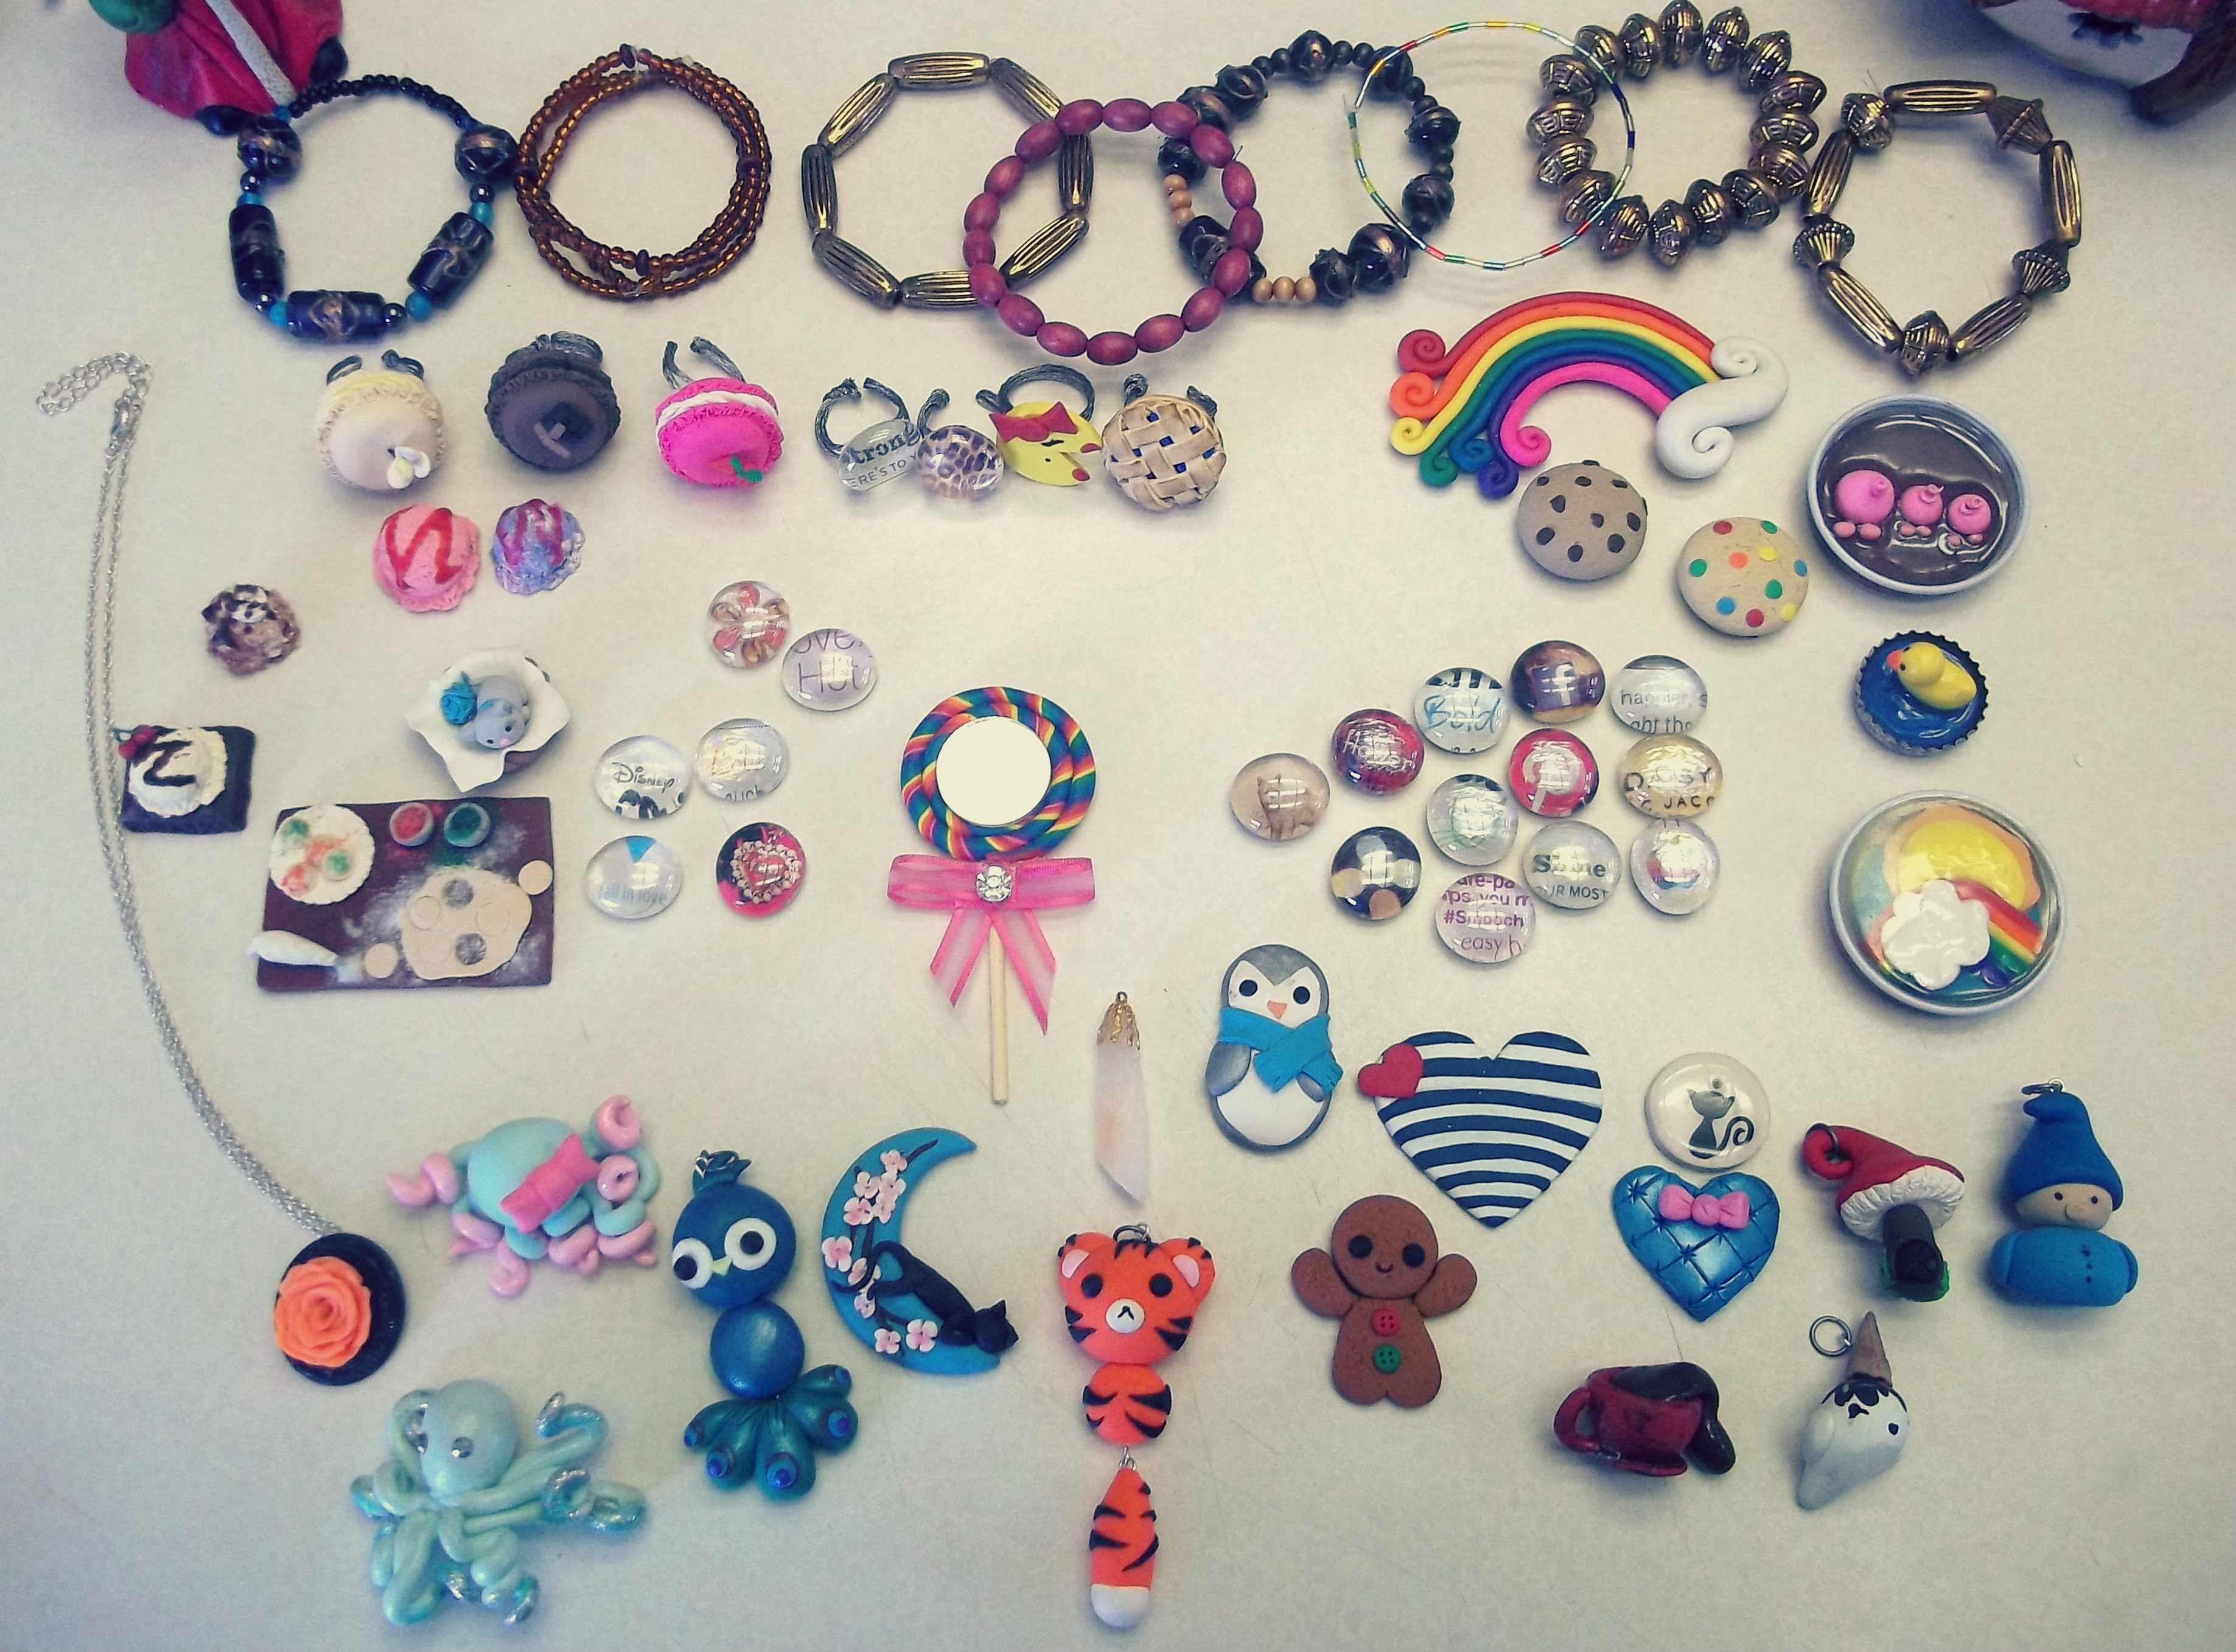 send you a craft of whatever you'd like made from polymer clay